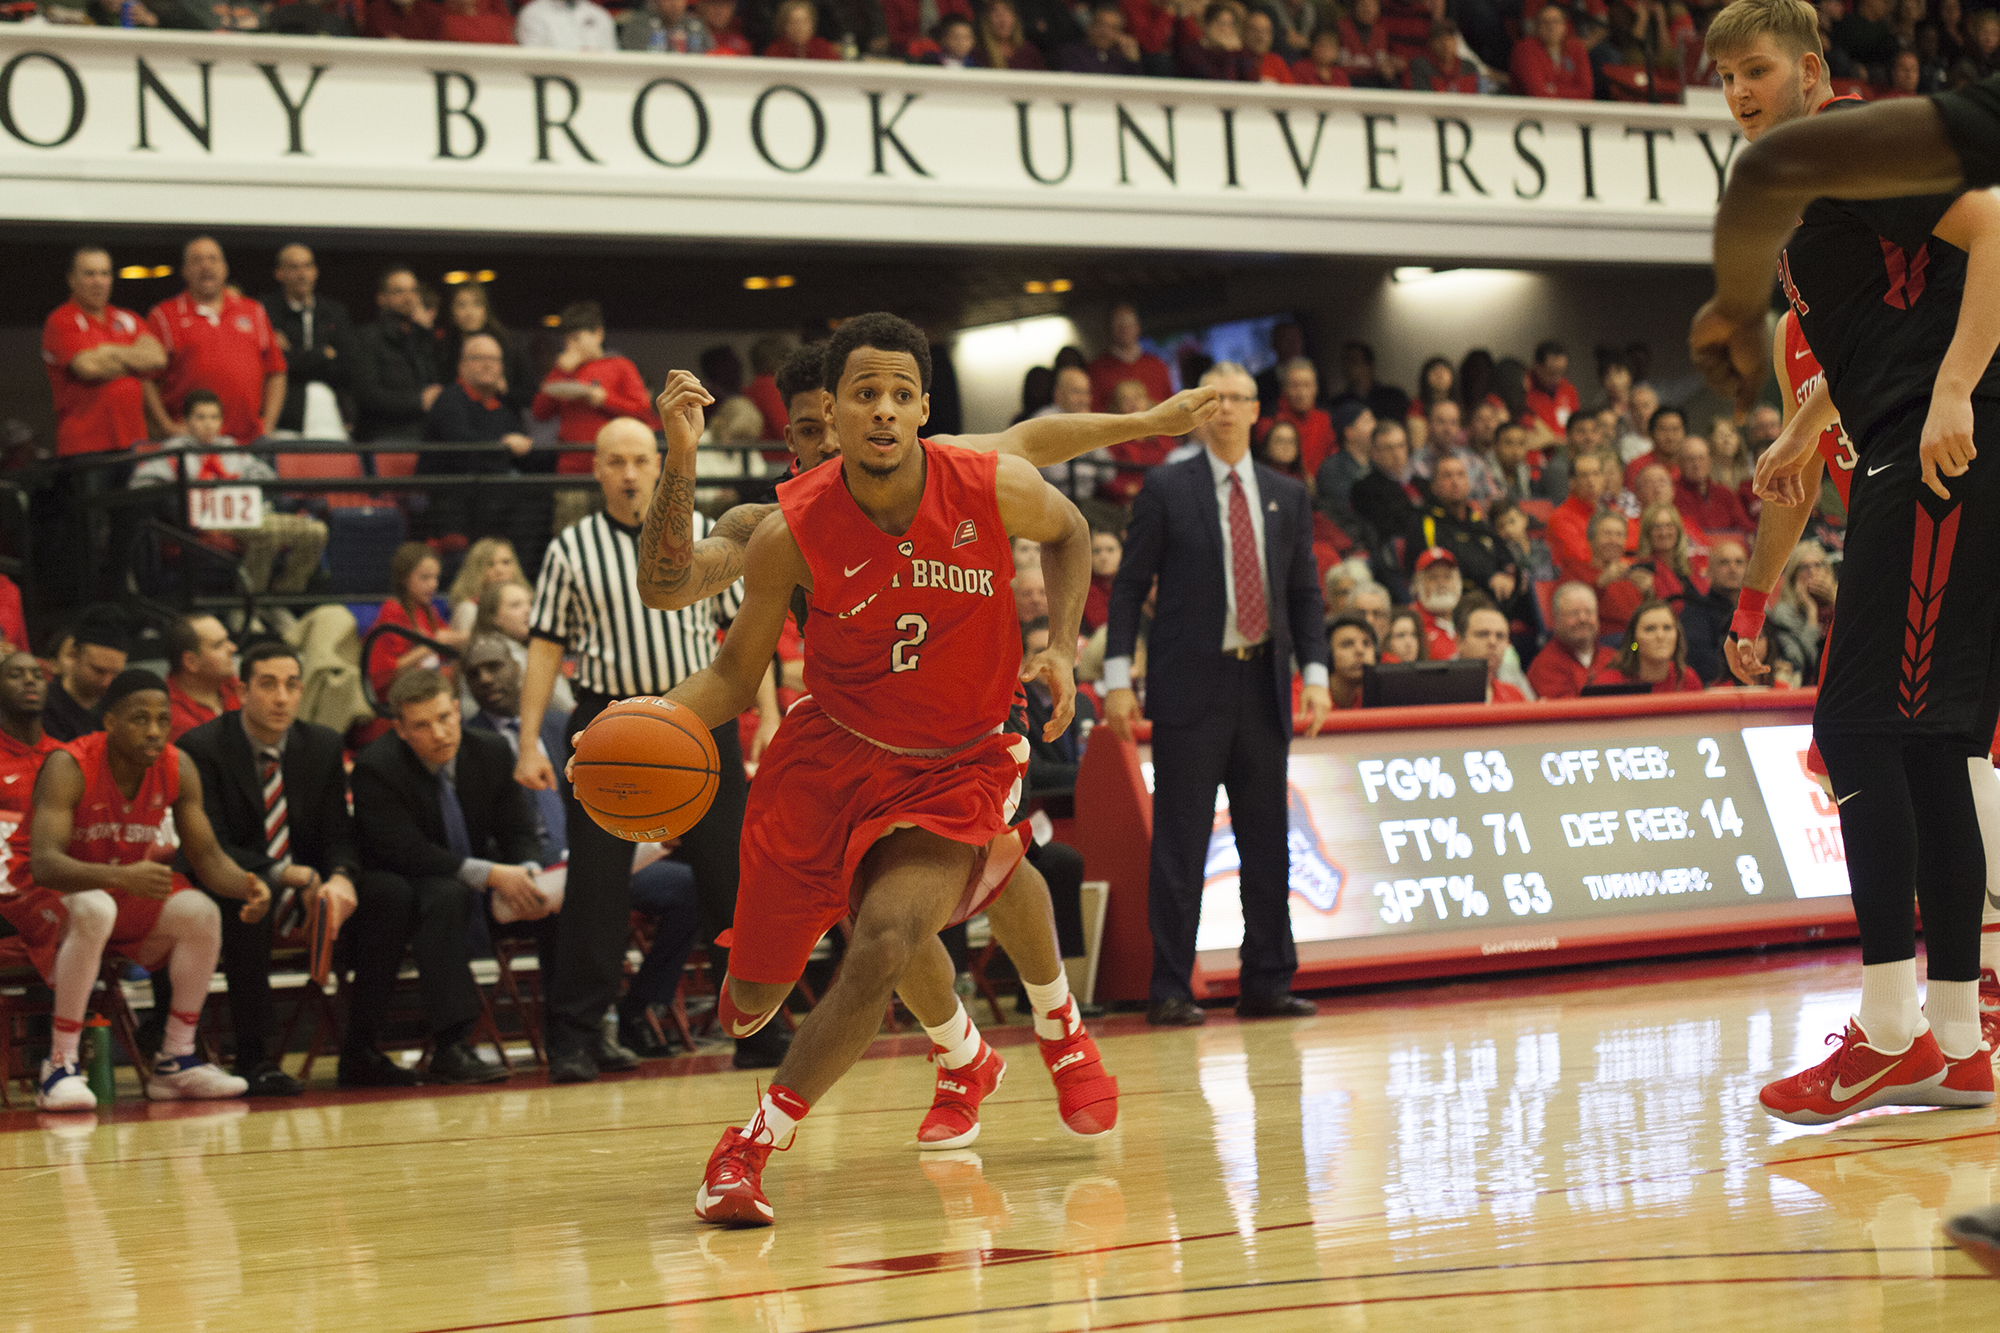 Freshman guard Michael Alomancy in a game against Rutgers on Dec. 10 at Island Federal Credit Union Arena. Although Stony Brook fell to Hofstra 999-000, Alomancy scored a career high of 15. ARACELY JIMENEZ/THE STATESMAN